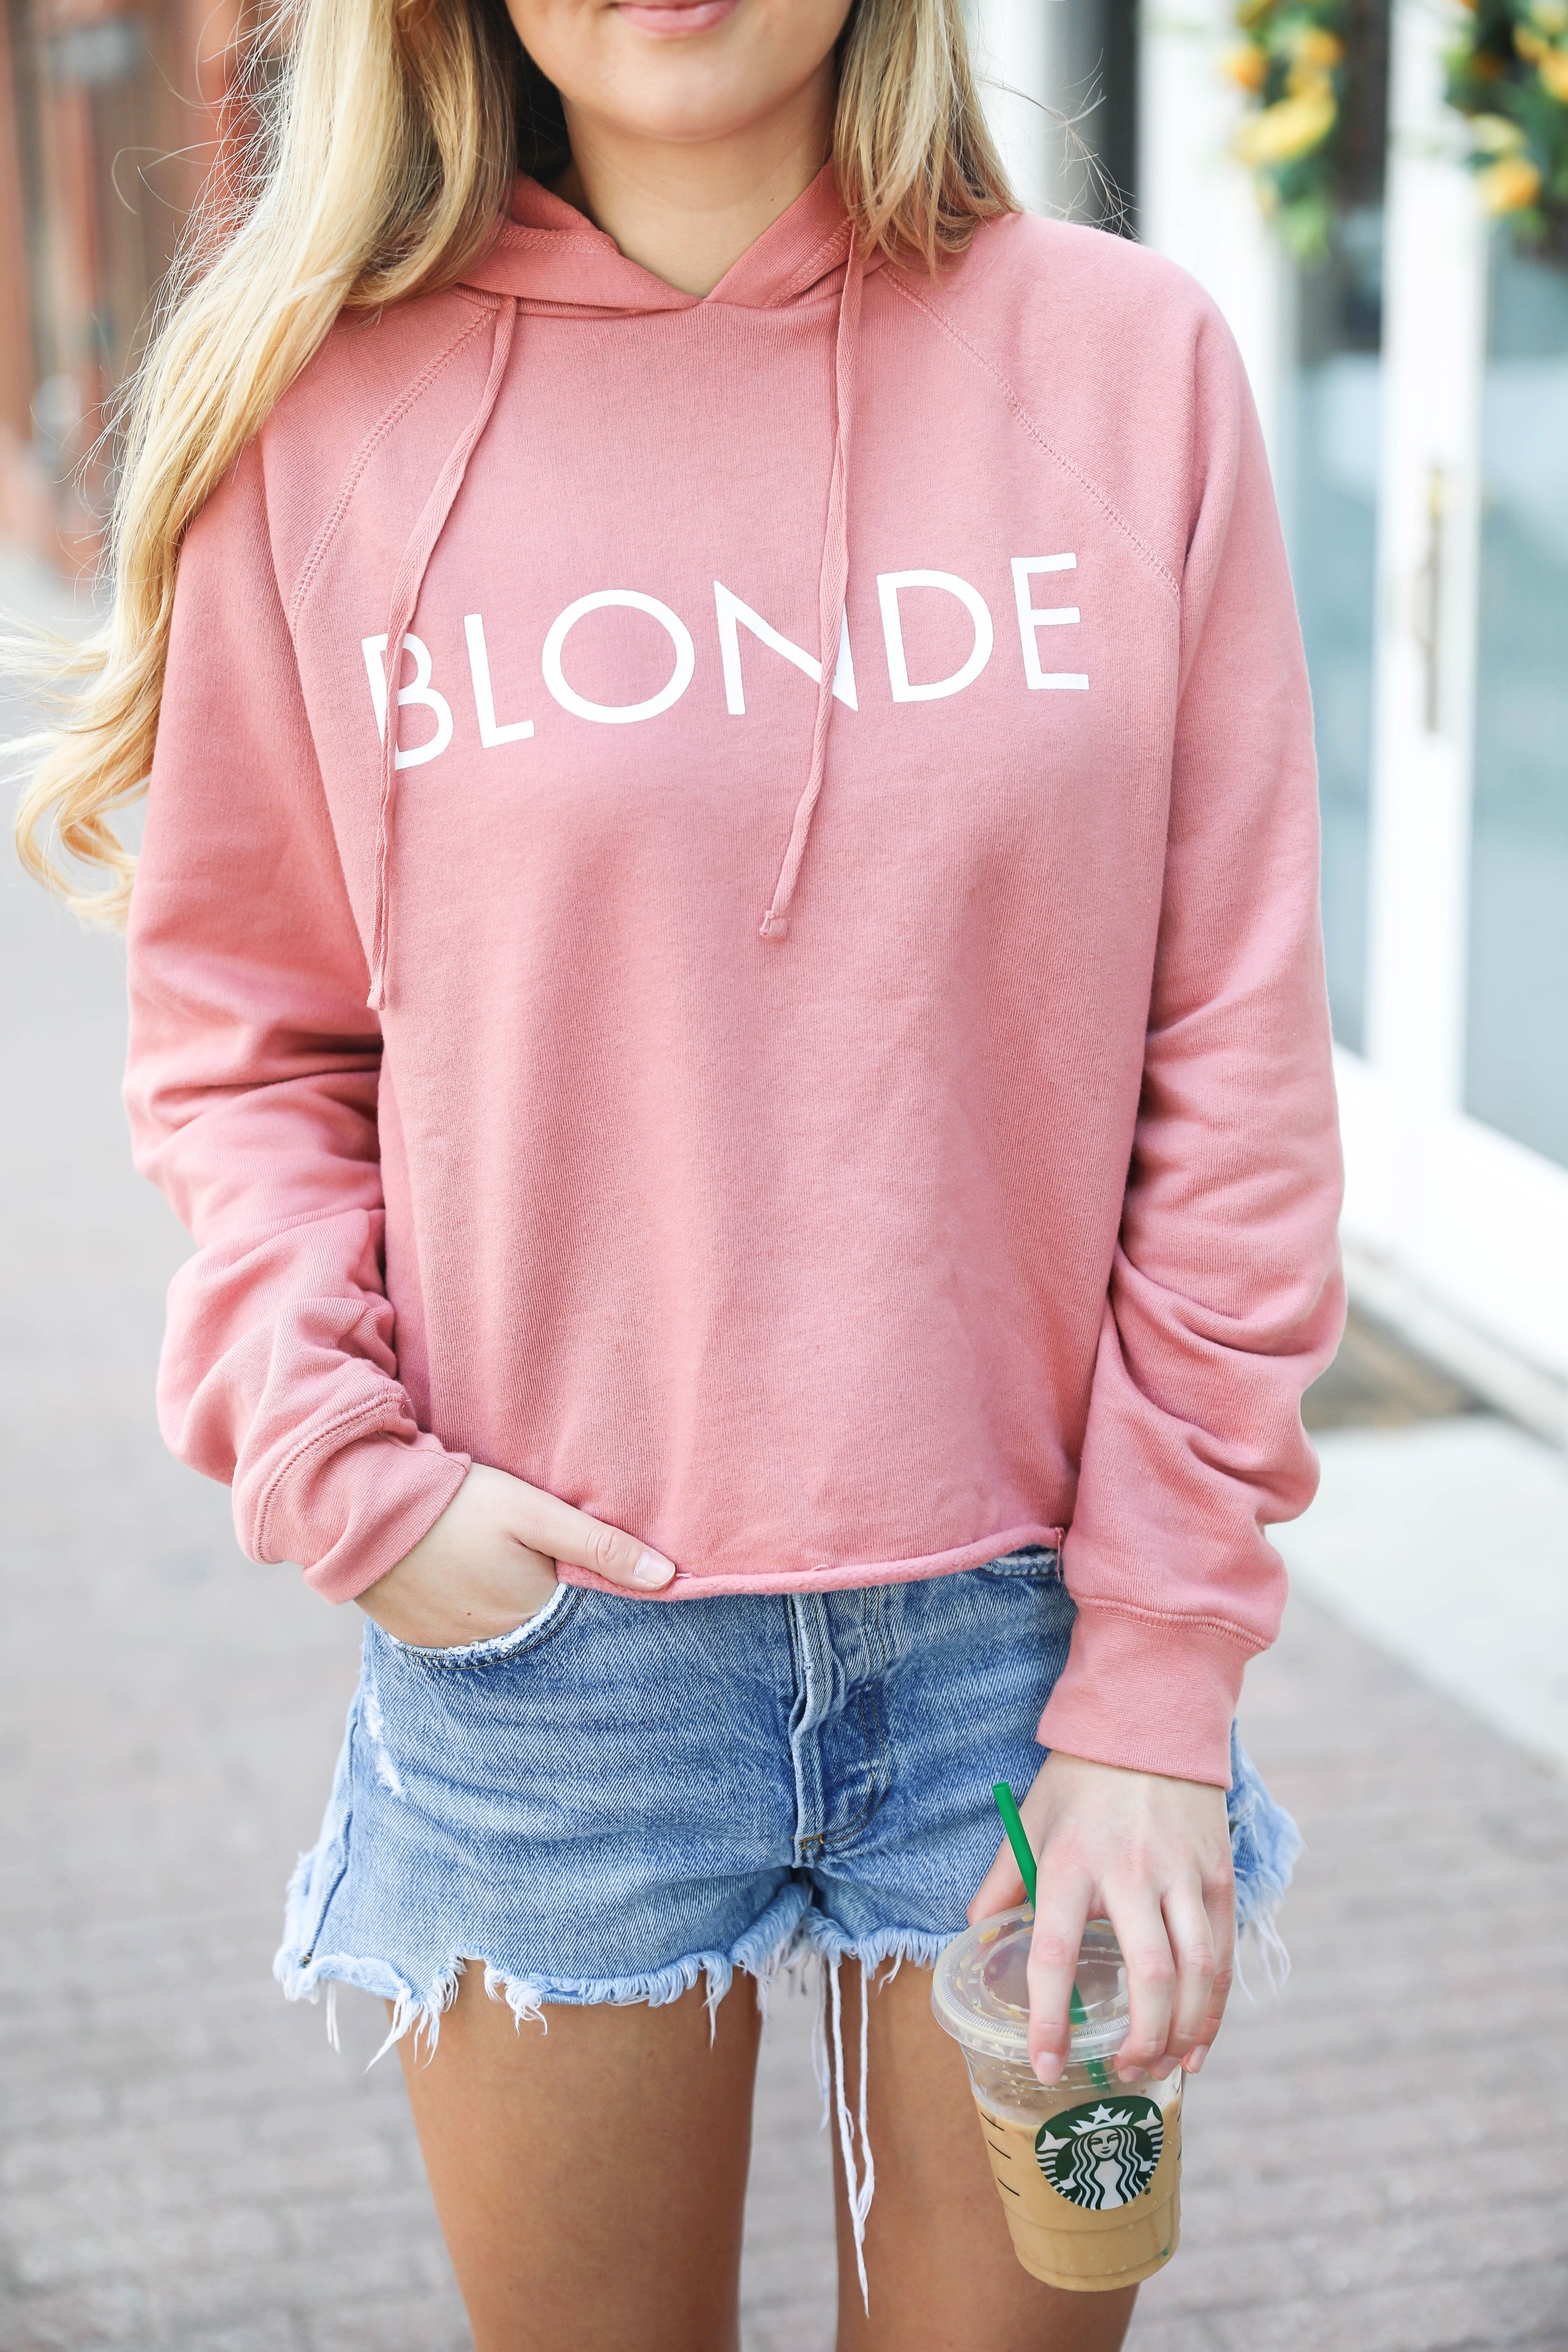 "Blonde sweatshirt! I love this cute coral sweatshirt that says ""Blonde."" It also comes in brunette and red head plus the sweatshirt comes in black and lavender! Such a fun summer style outfit! Details on fashion blog daily dose of charm by lauren lindmark"